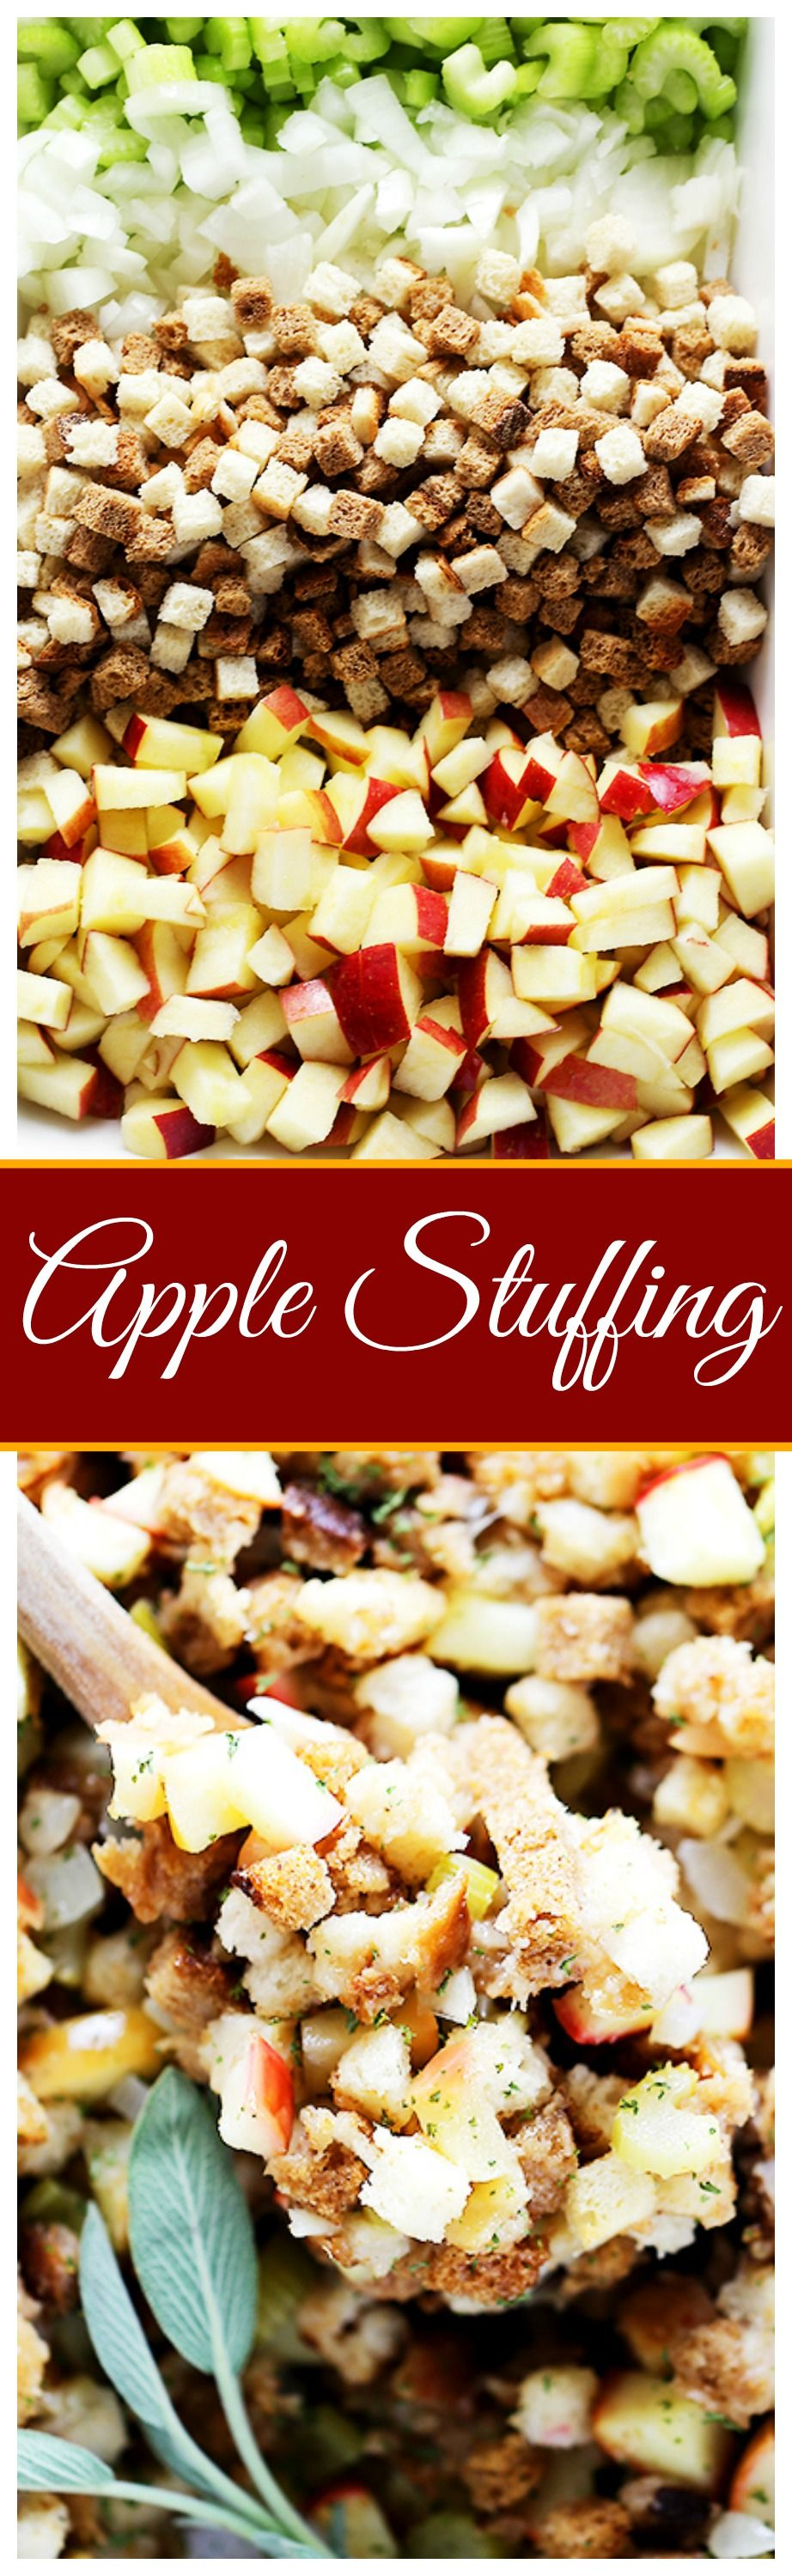 Easy Apple Stuffing Recipe